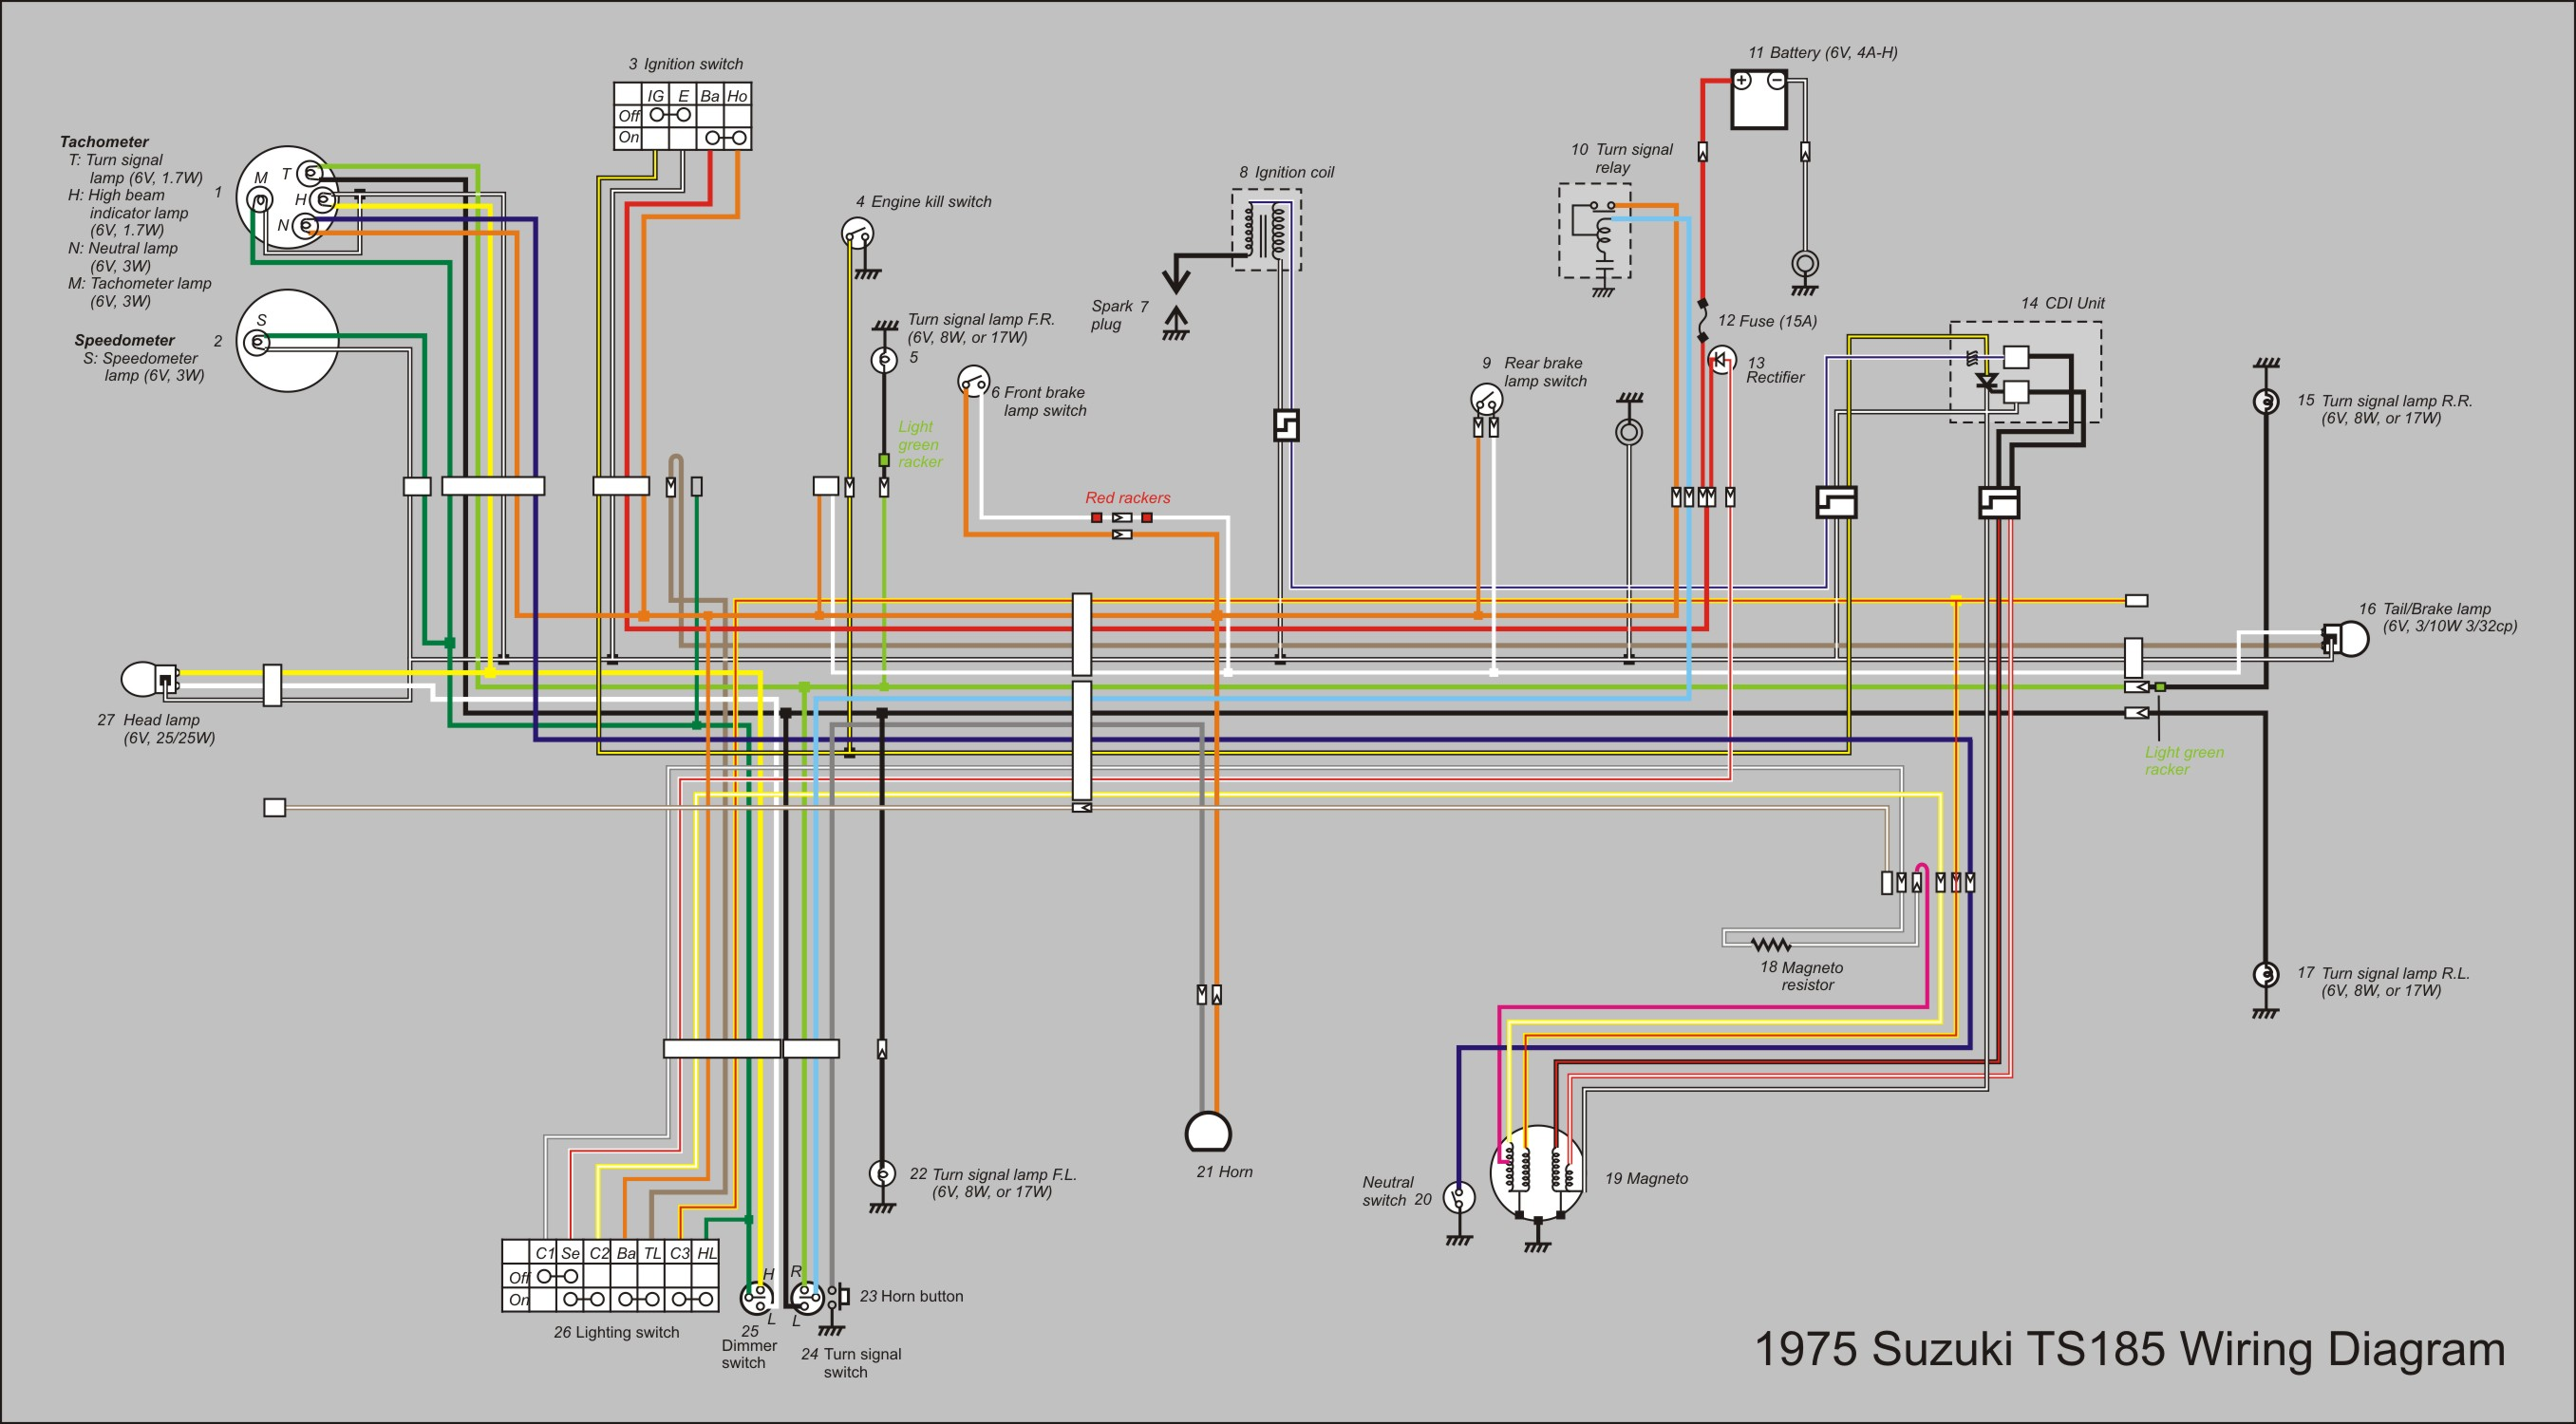 Filets185 Wiring Diagram New Wikimedia Commons Acura Engine